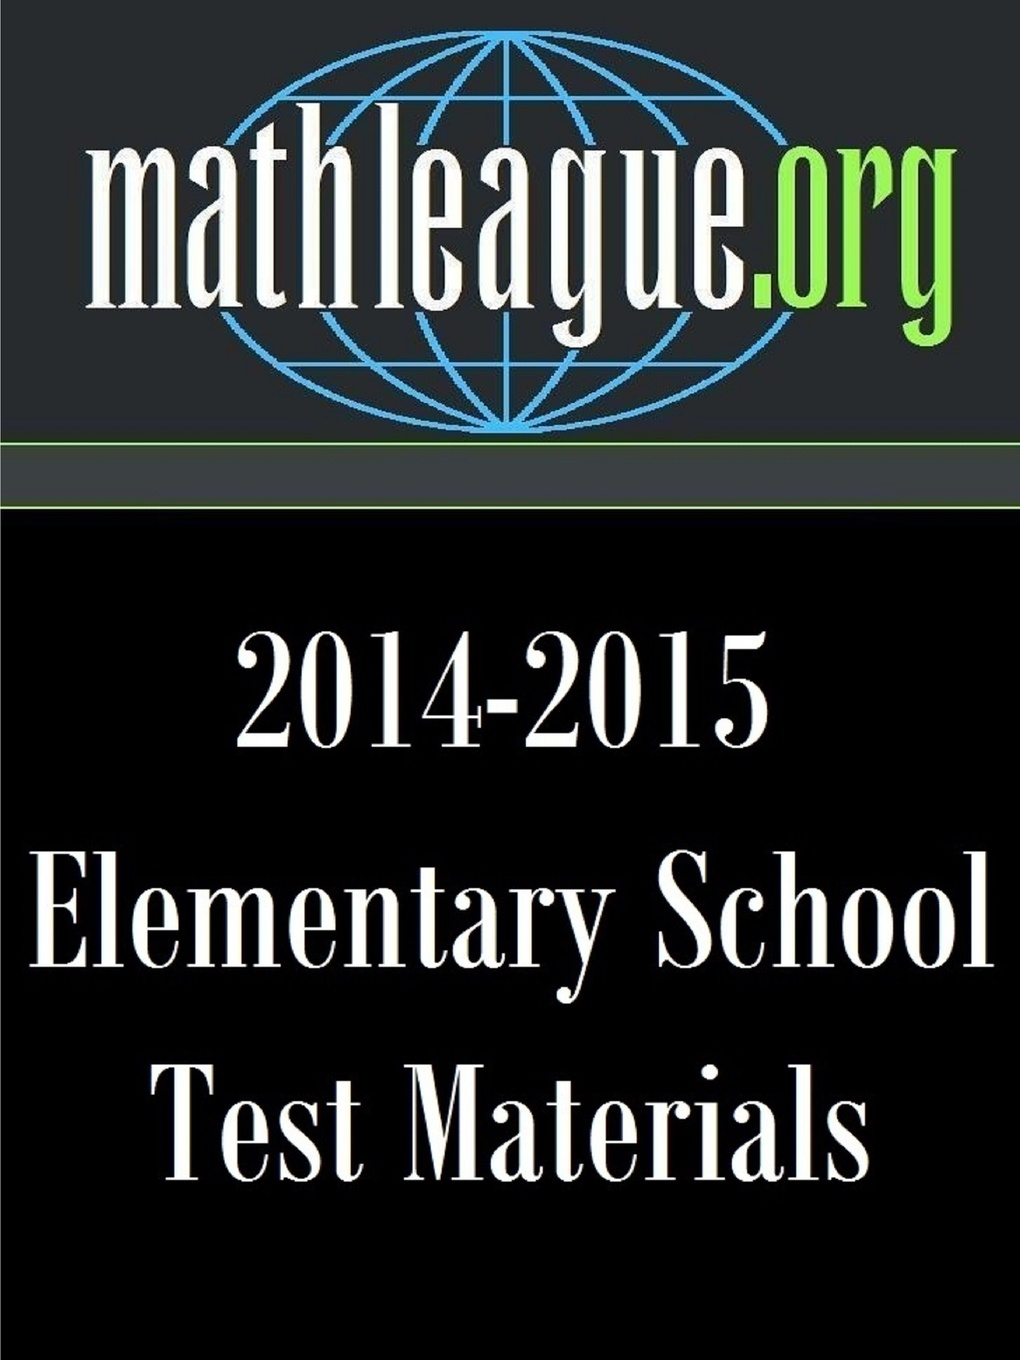 Tim Sanders Elementary School Test Materials 2014-2015 test